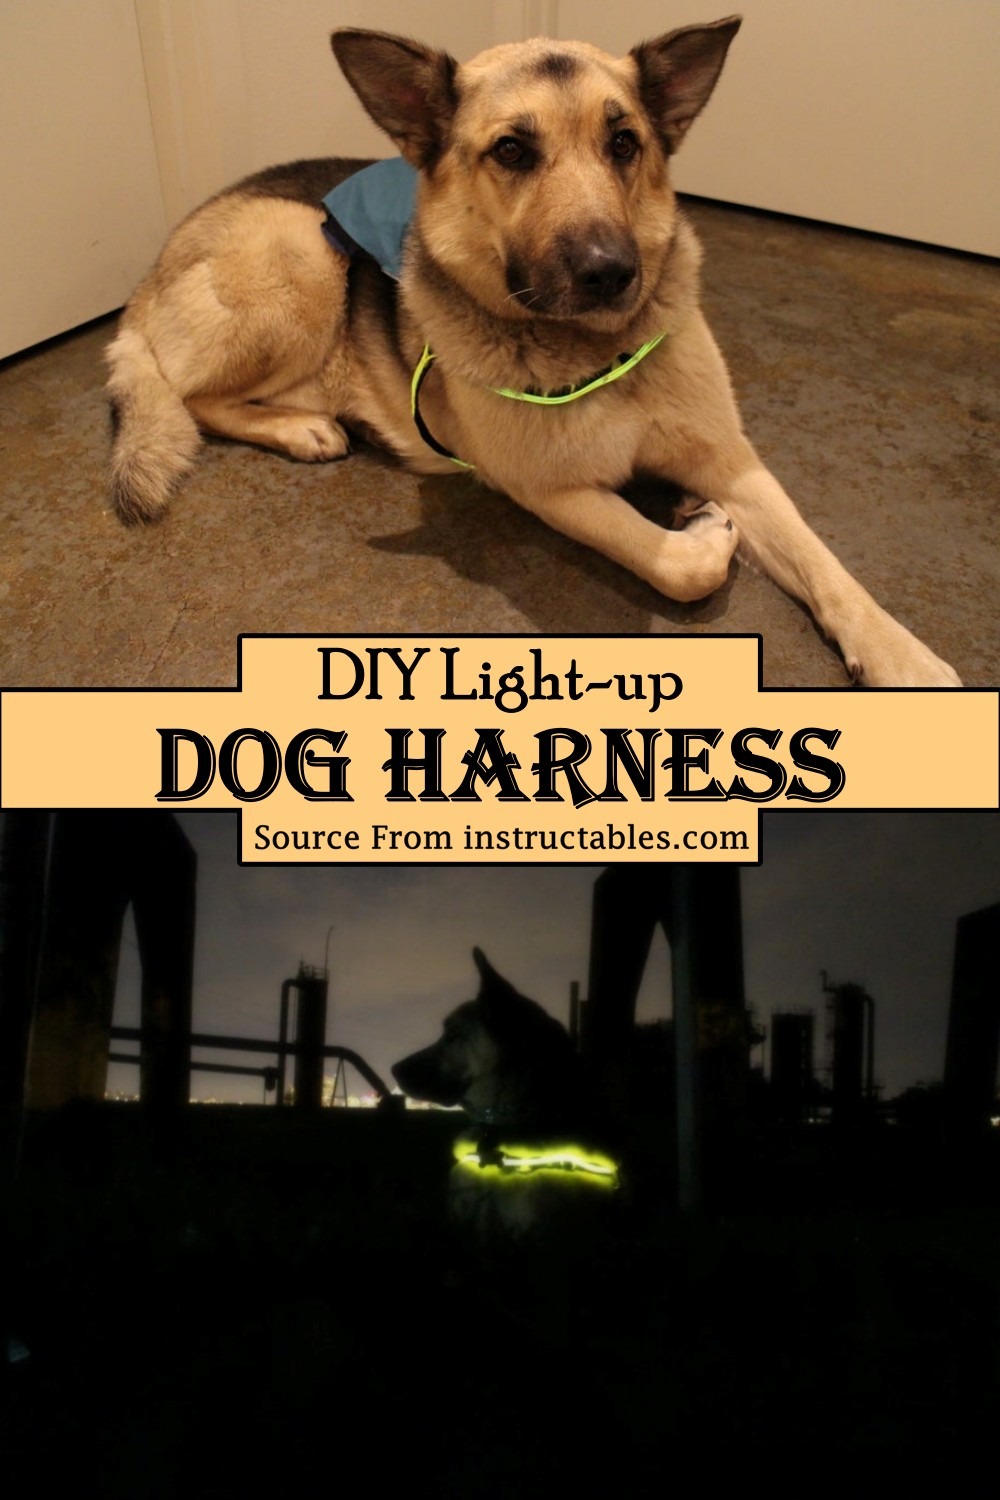 Light-up Harness for your pooch